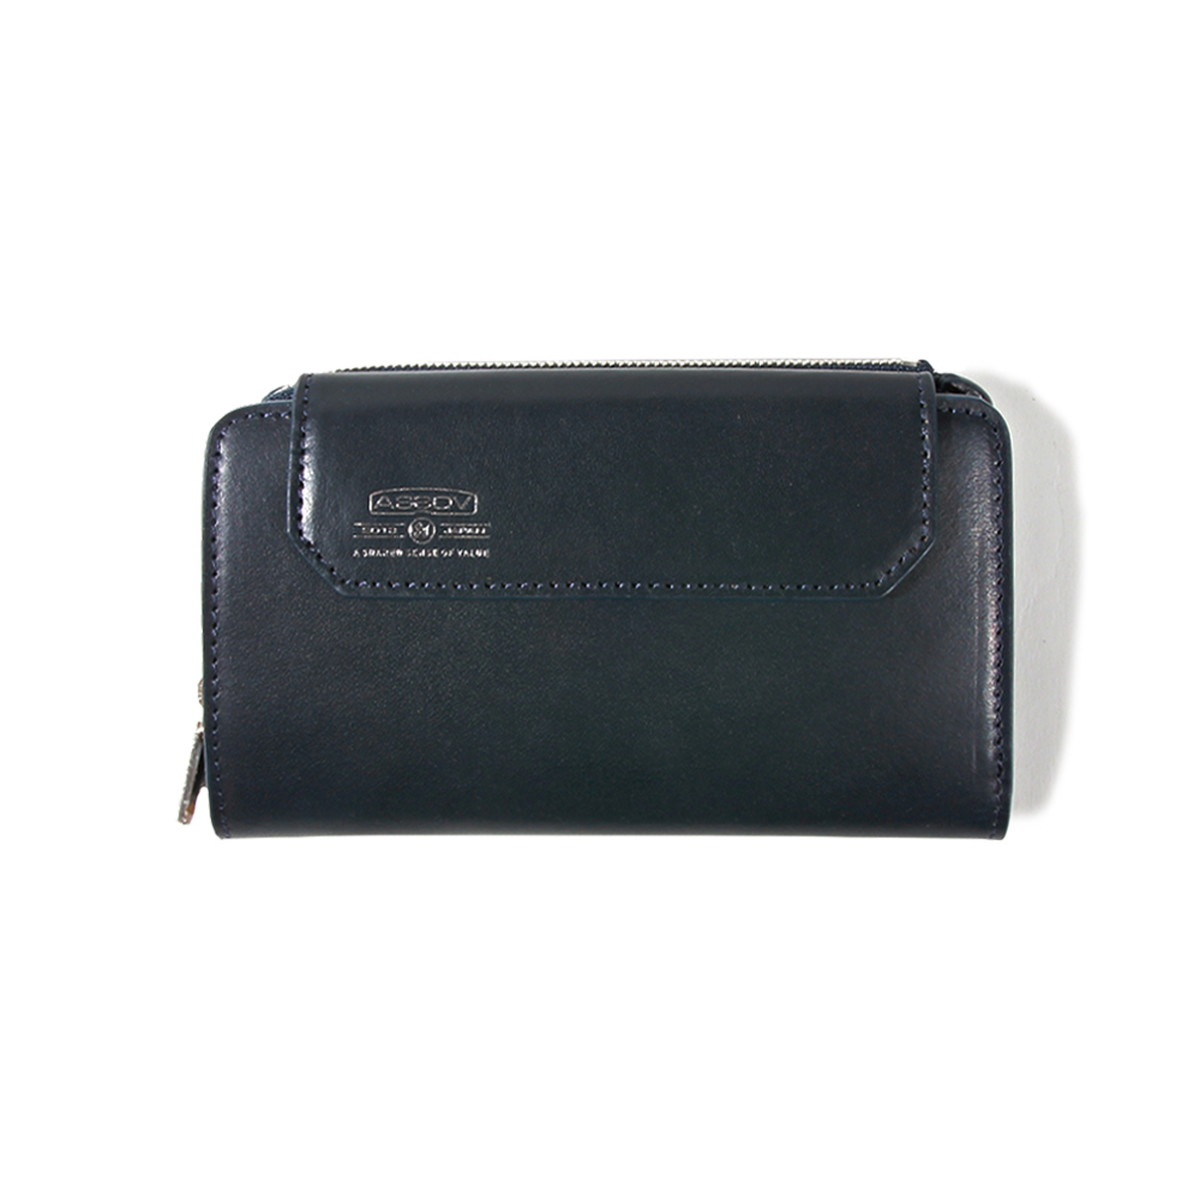 AS2OV (アッソブ) レザー 折財布 ショートウォレット LEATHER MOBILE WALLET SHORT WALLET 081601